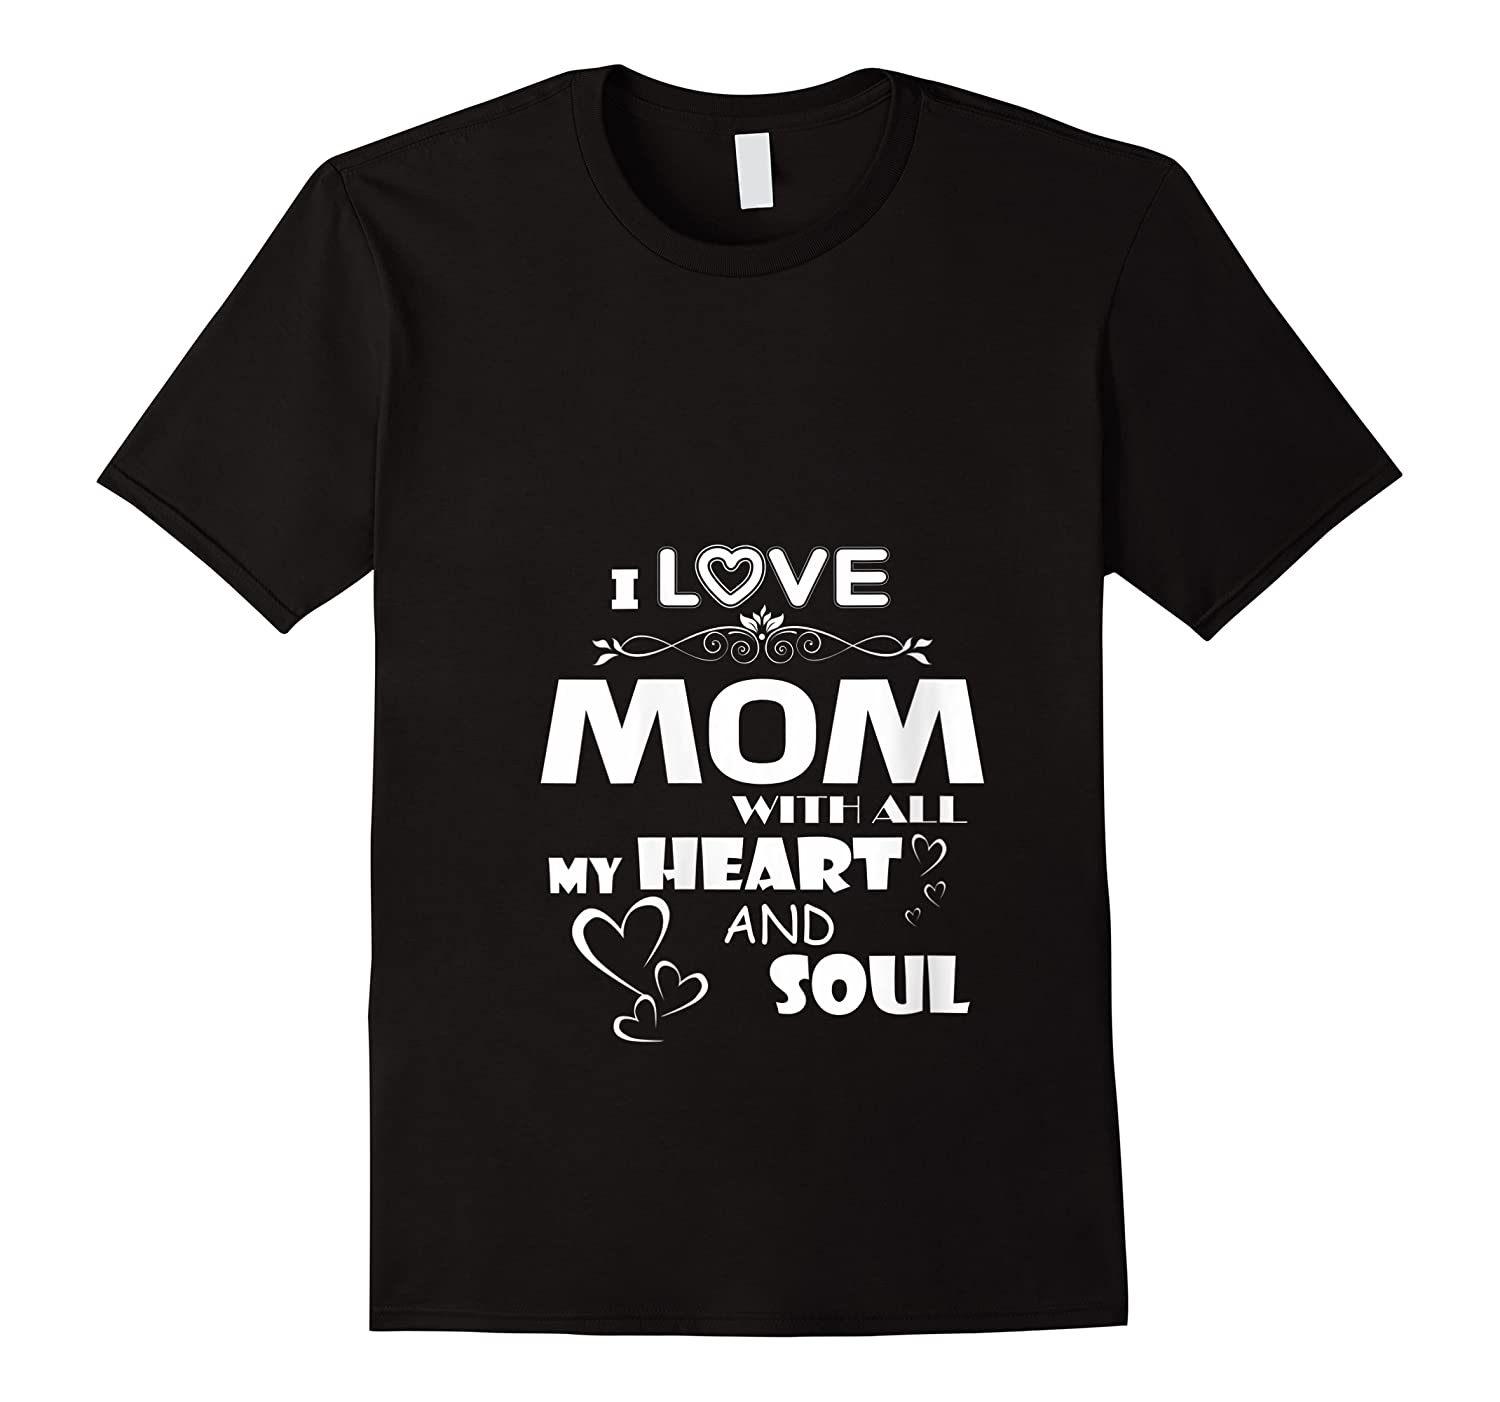 I Love Mom With All My Heart And Soul Shirt T Shirt